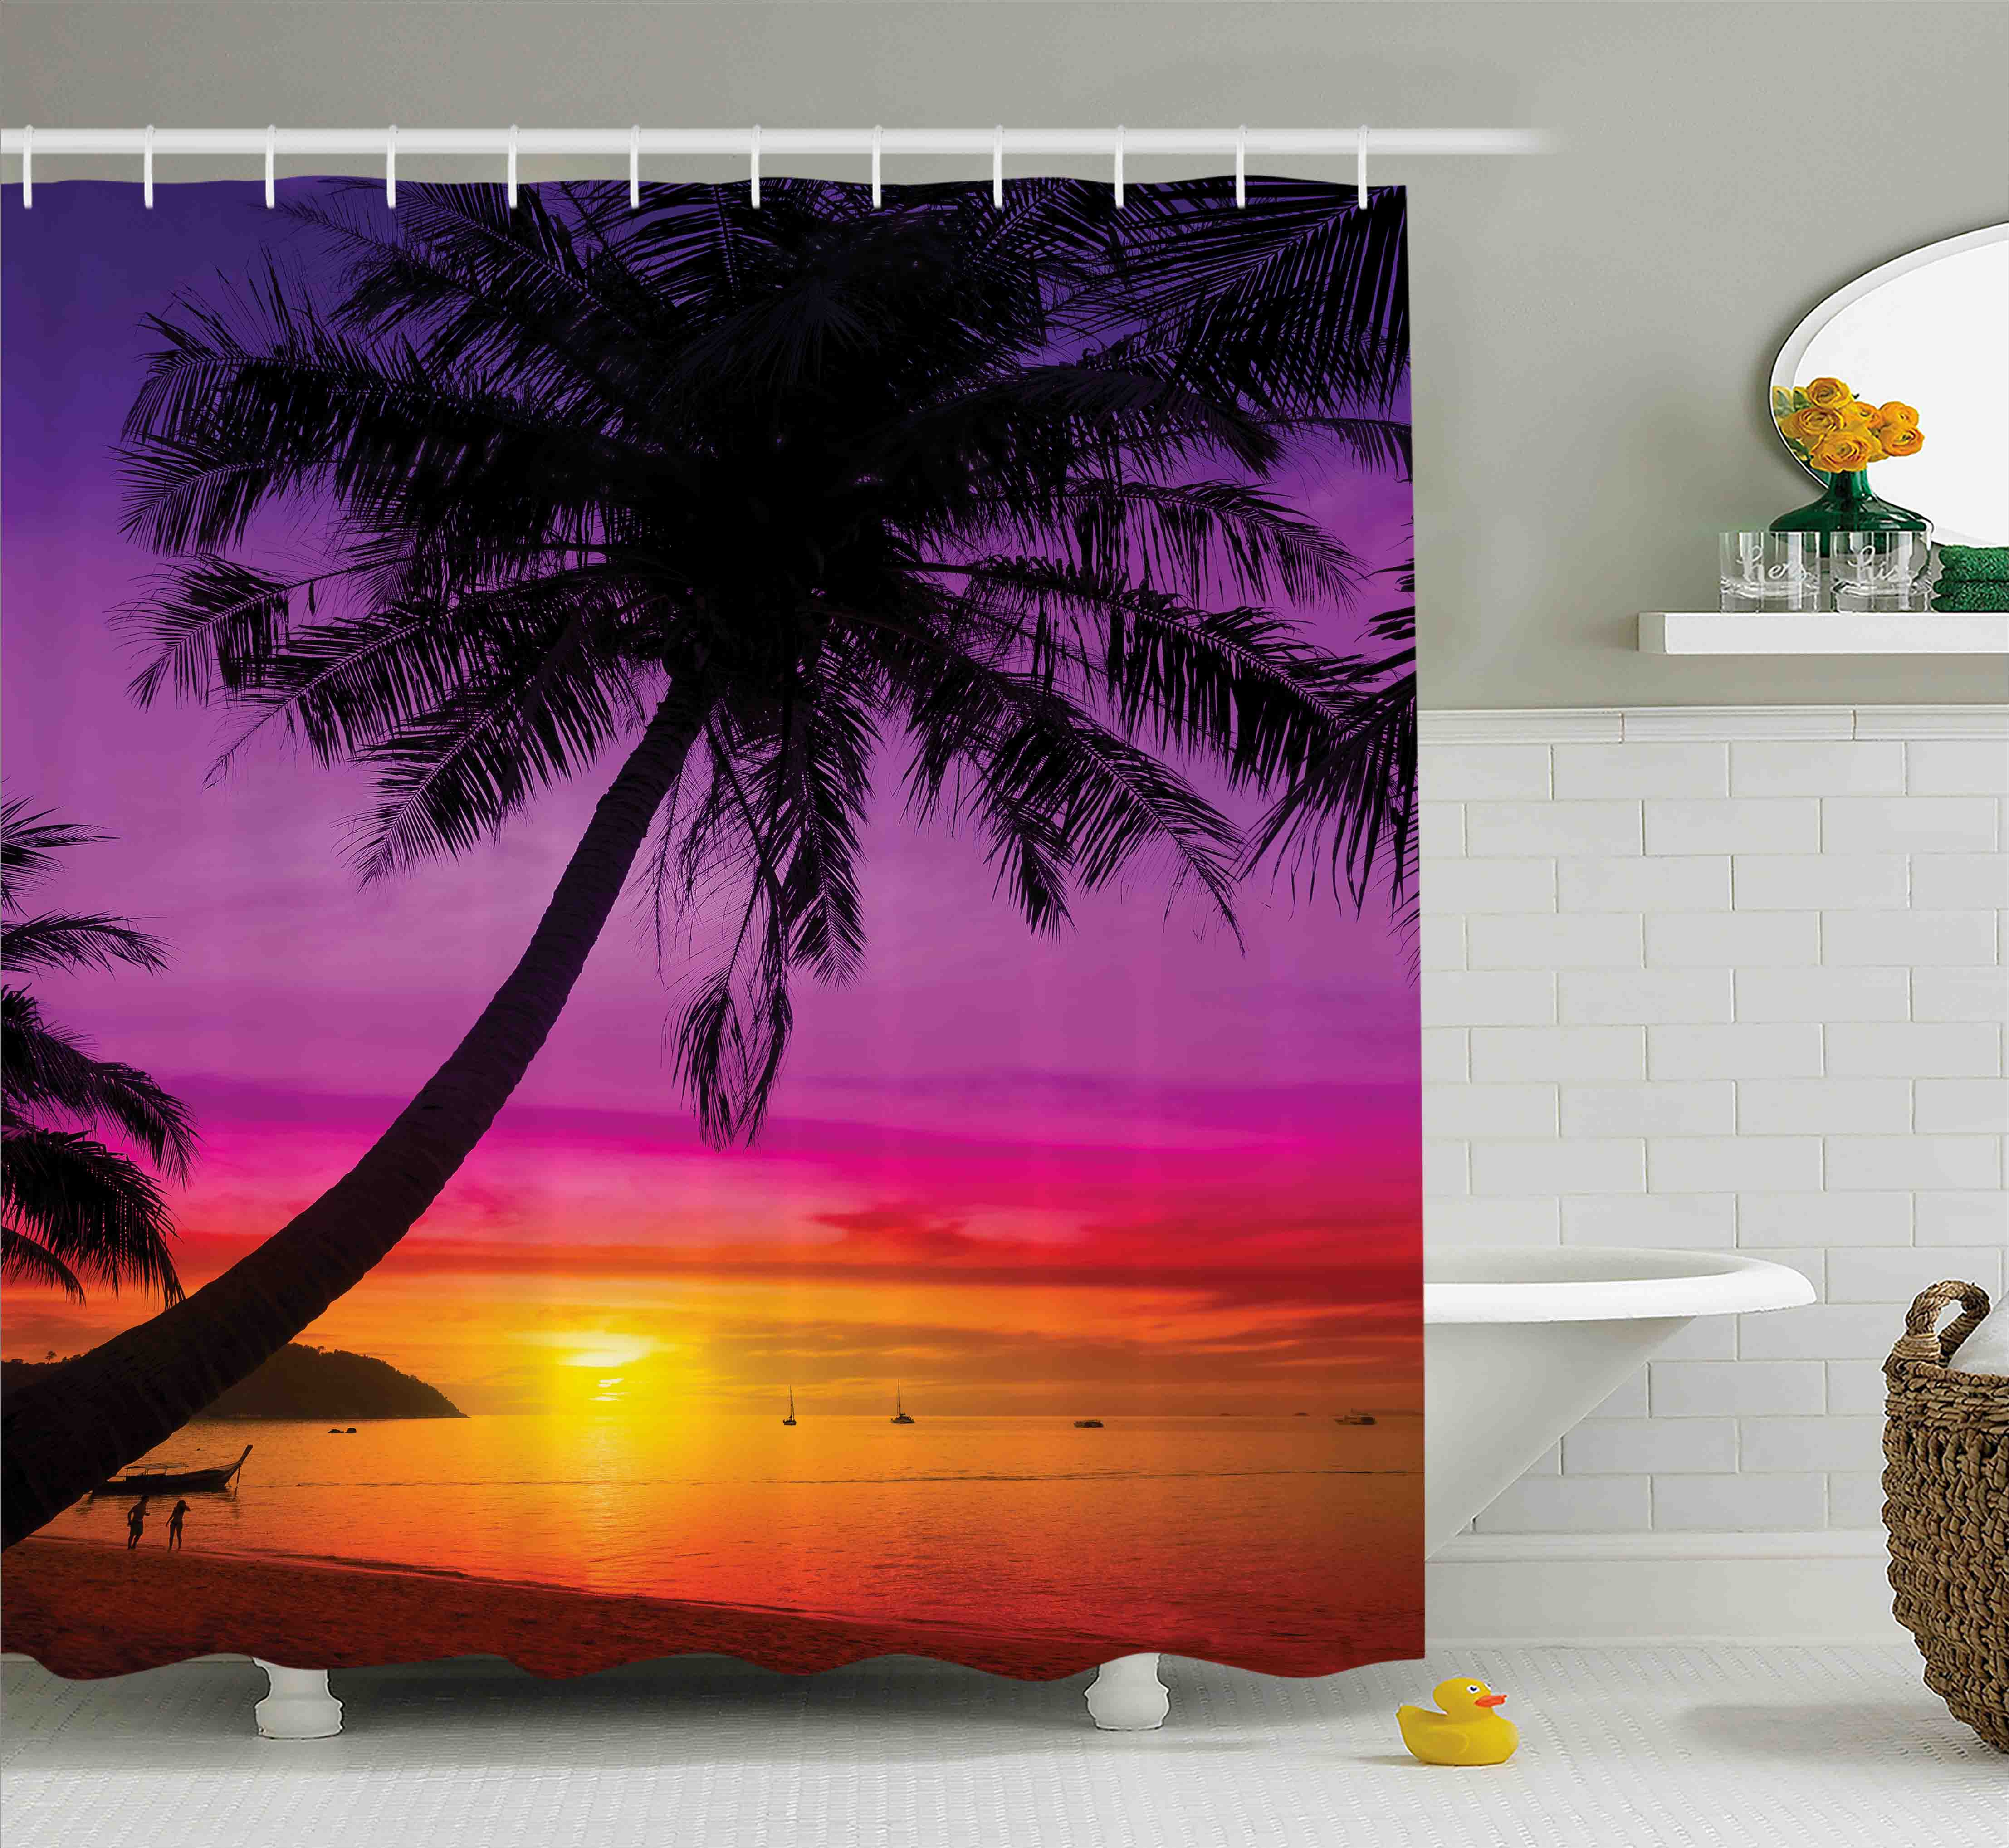 Tropical Decor  Palm Tree Silhouette On Tropical Beach At...